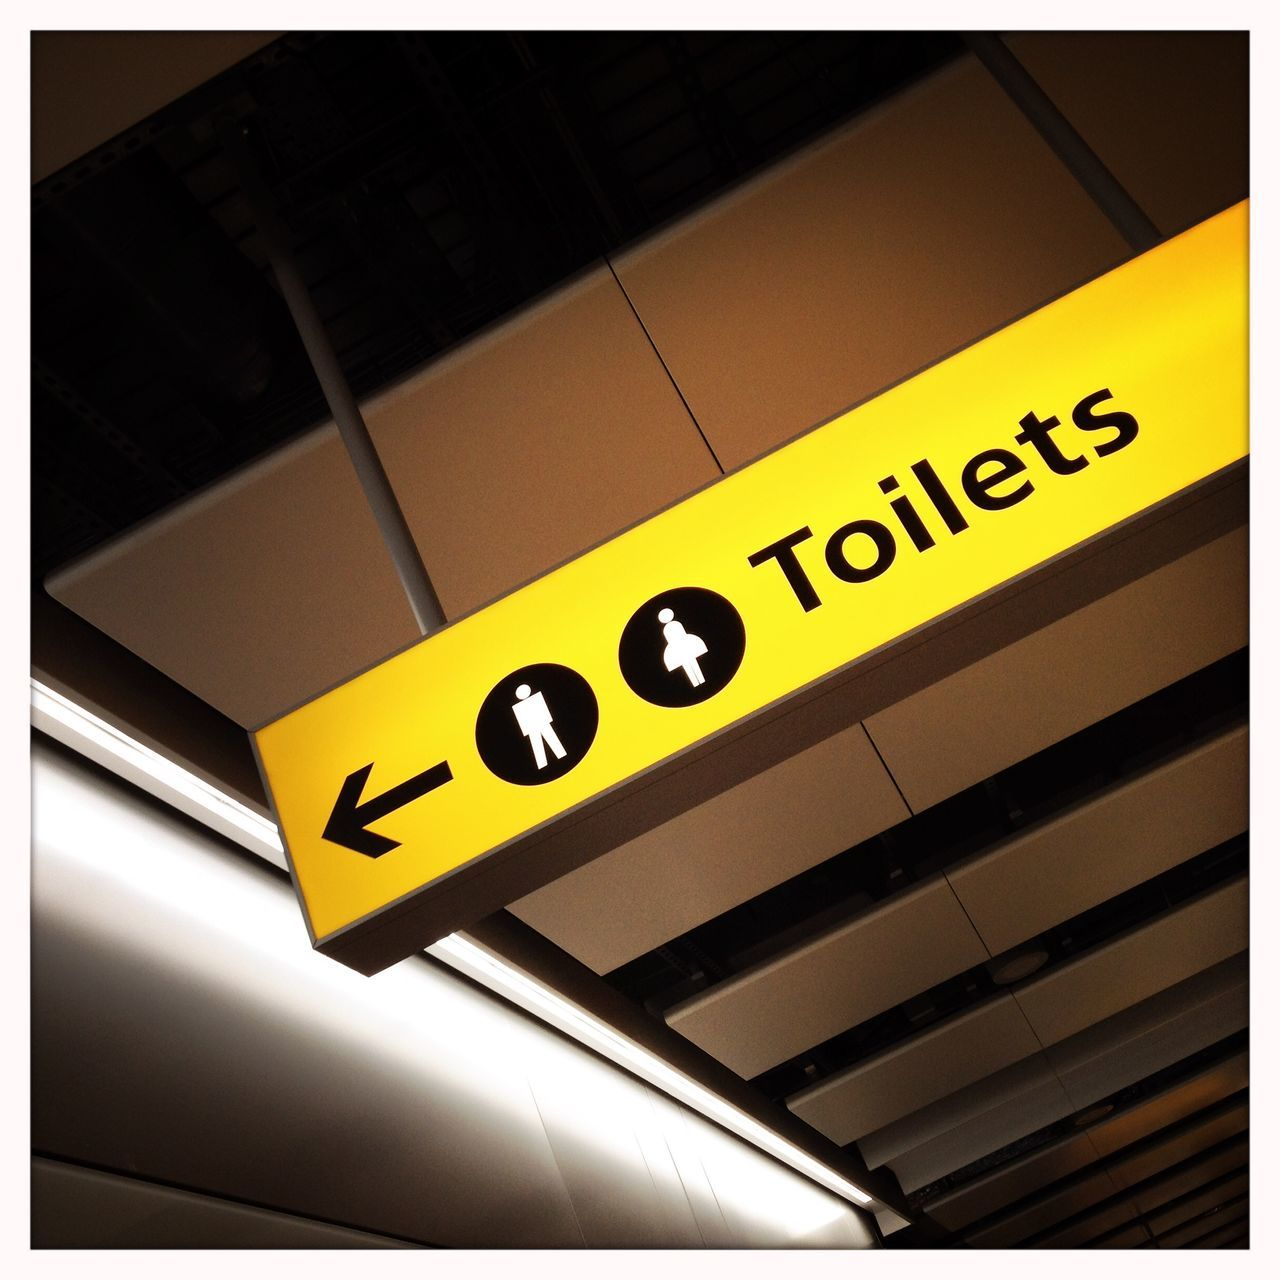 Arrow Symbol Direction Guidance Guide Information Information Sign Rest Room Sign Text Toilets Western Script